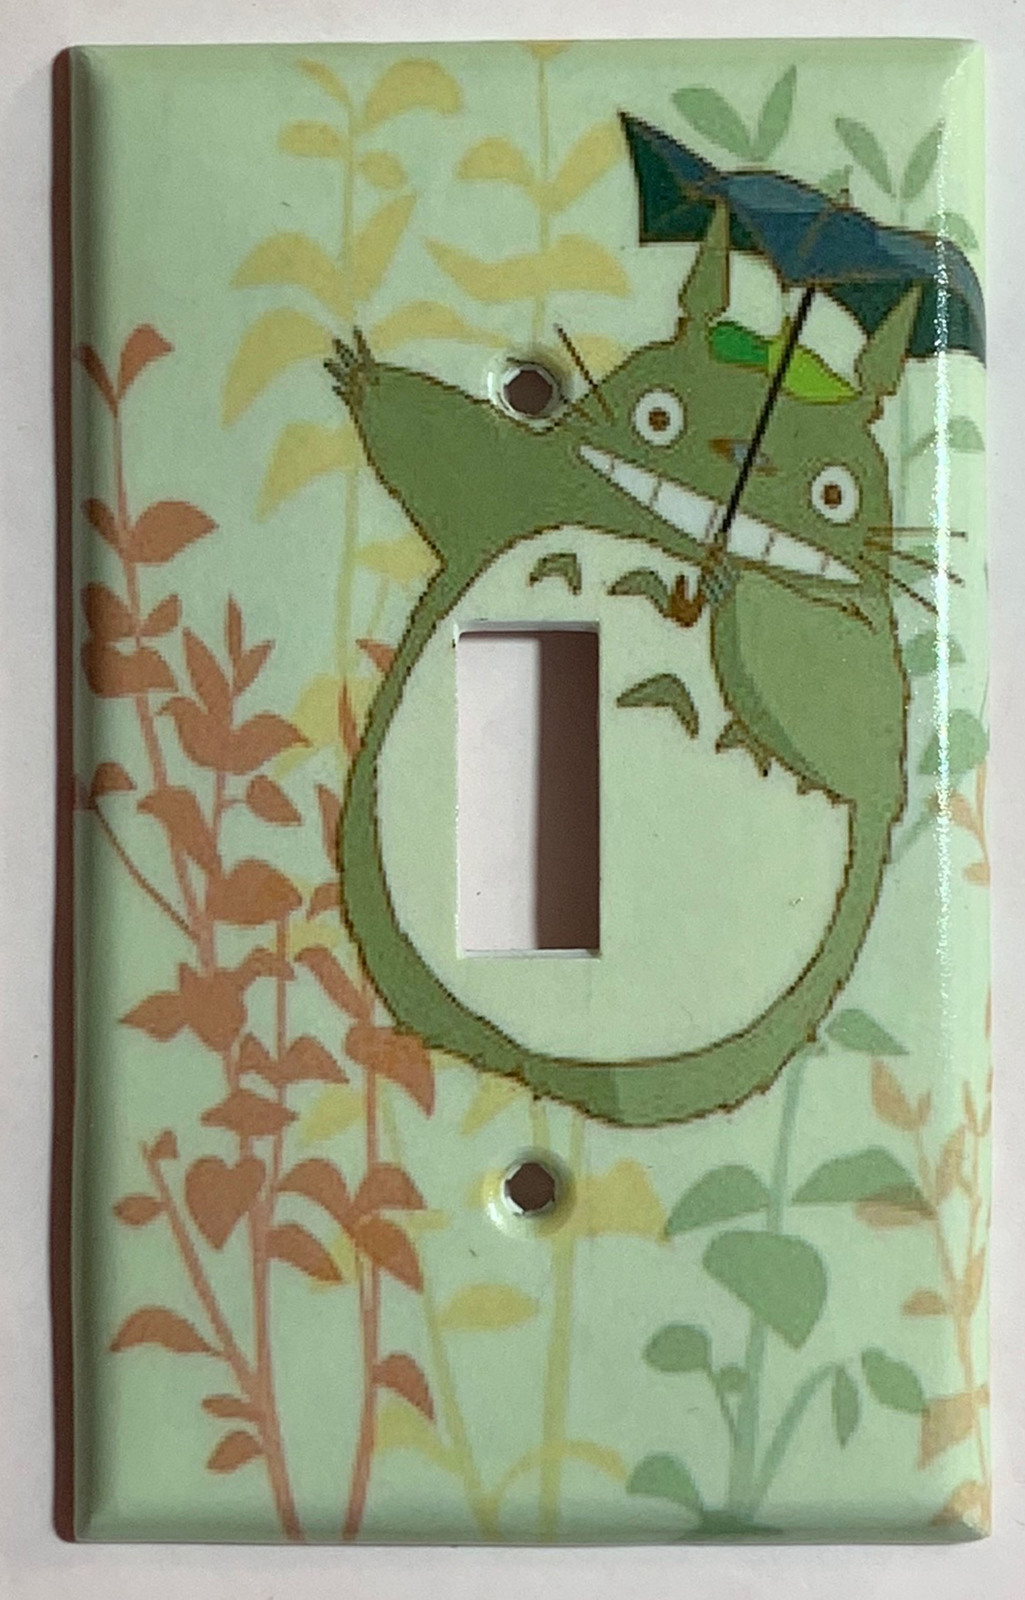 Totoro art single toggle